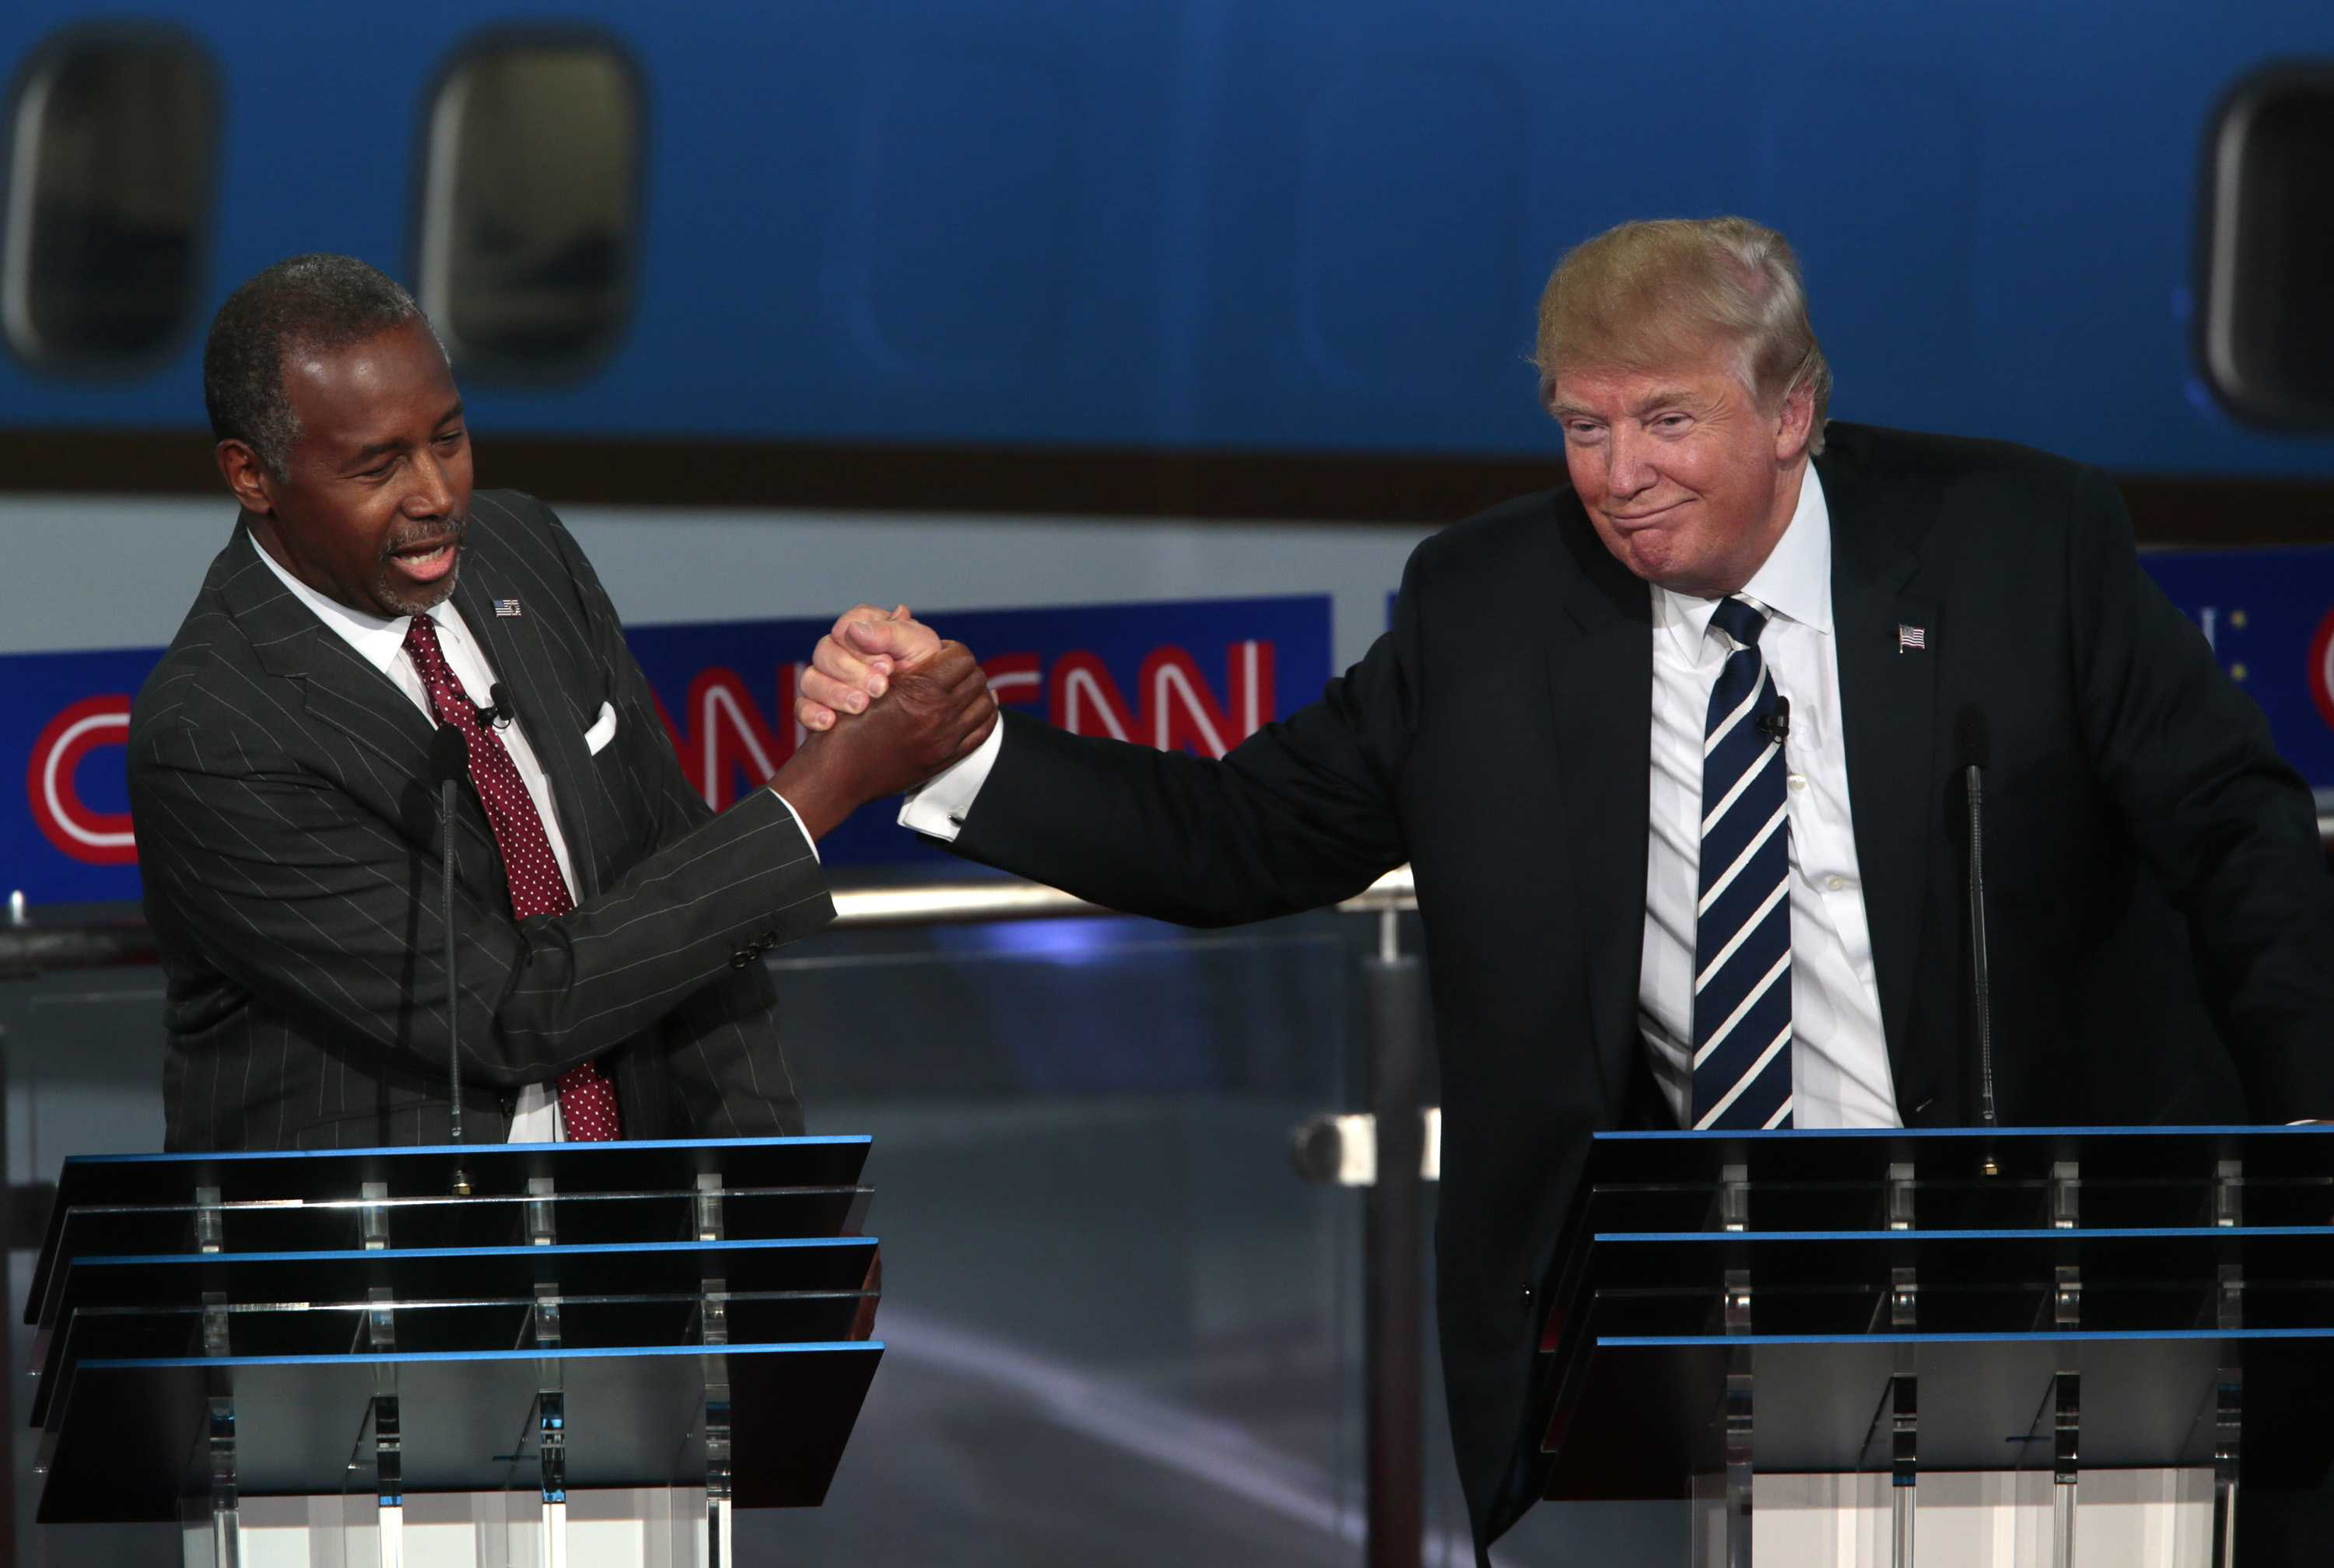 Republican presidential candidates Ben Carson, left, and Donald Trump during the GOP debate at the Reagan Library in Simi Valley, Calif., on Wednesday, Sept. 16, 2015. (Robert Gauthier/Los Angeles Times/TNS)